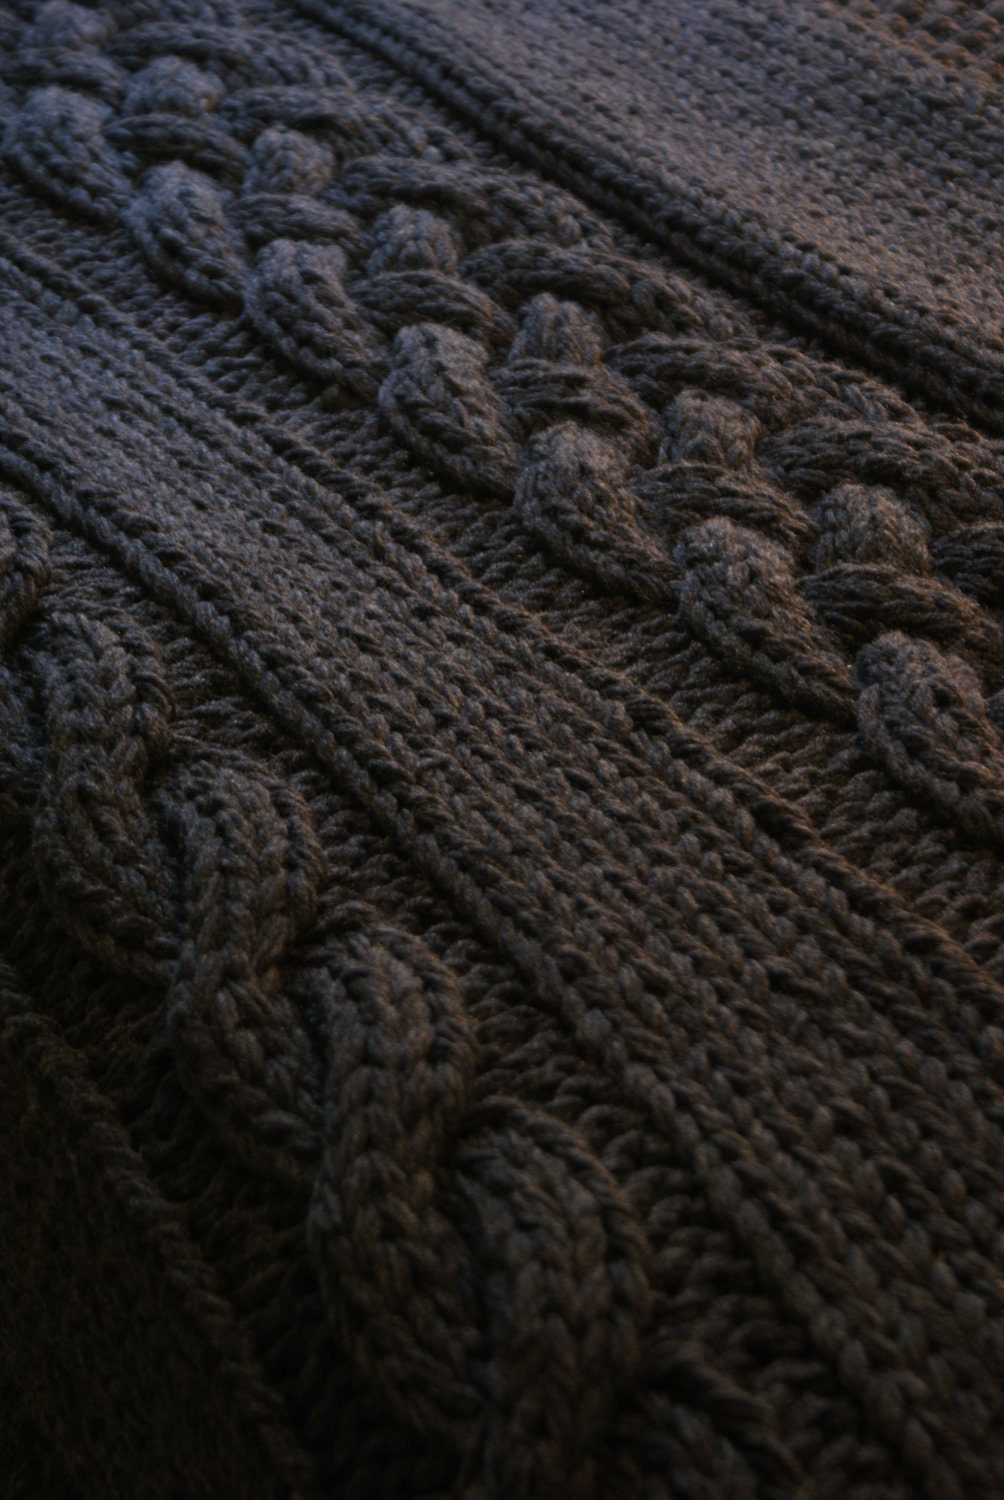 Super Chunky Knit Blanket Pattern : Pattern Throw Blanket / Rug Super Chunky Double Cable by ...